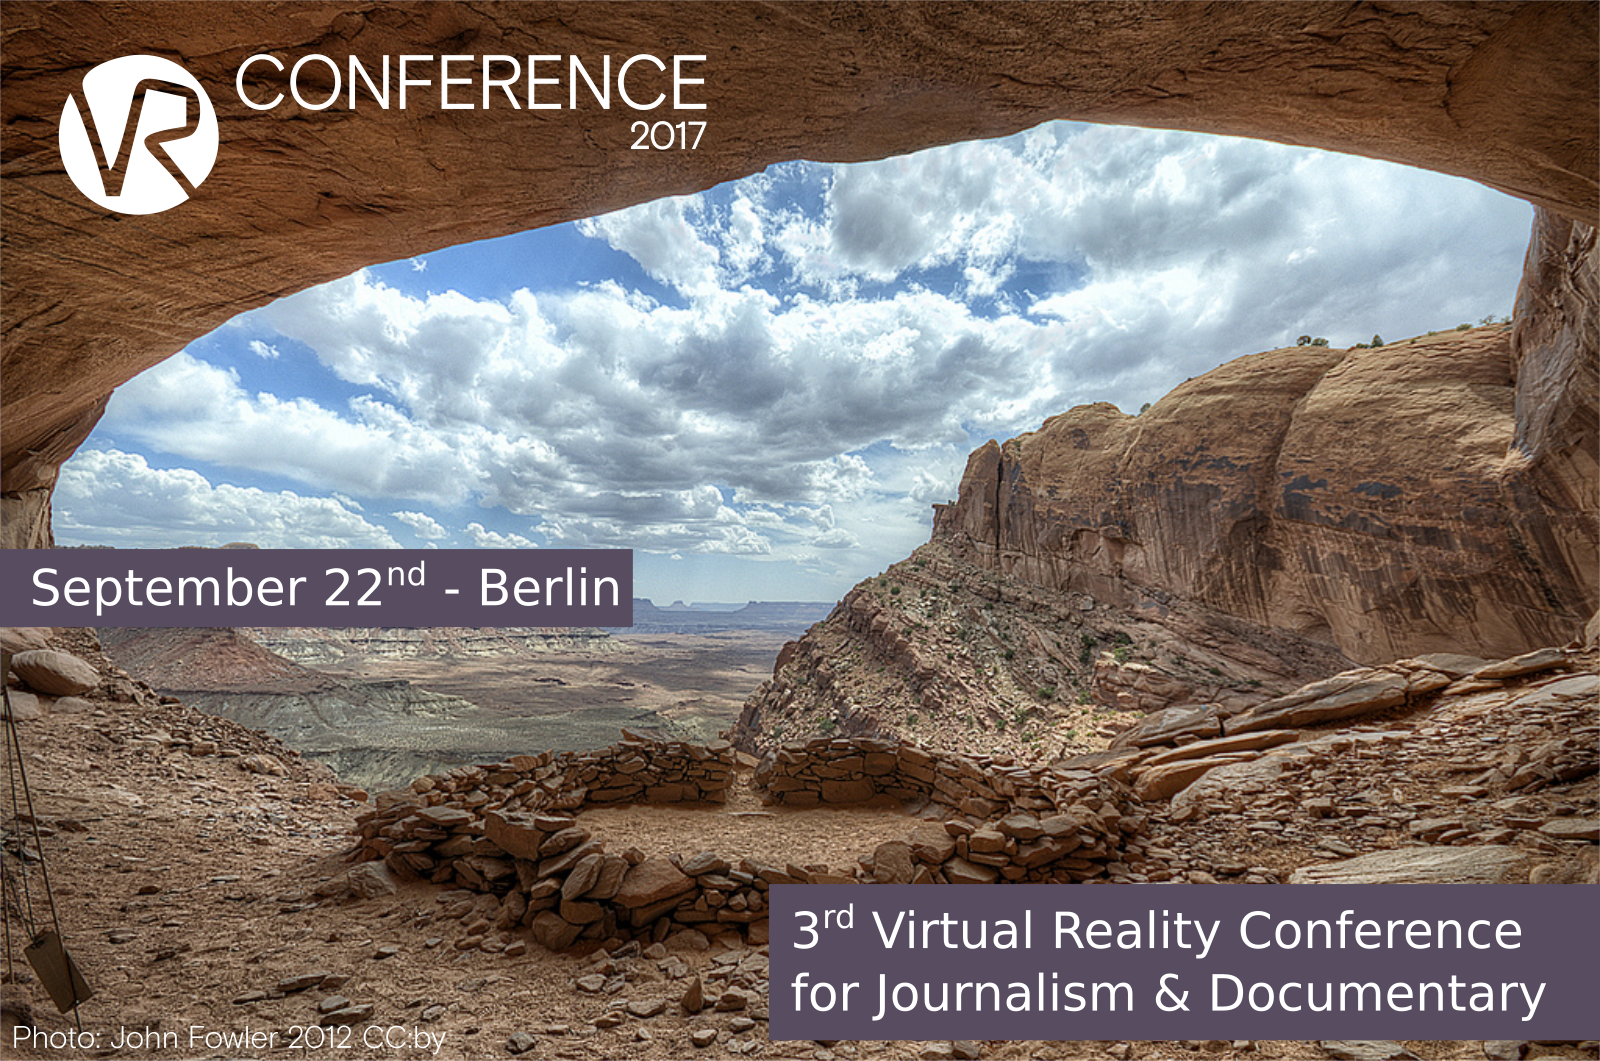 VR_Cpnference_Berlin